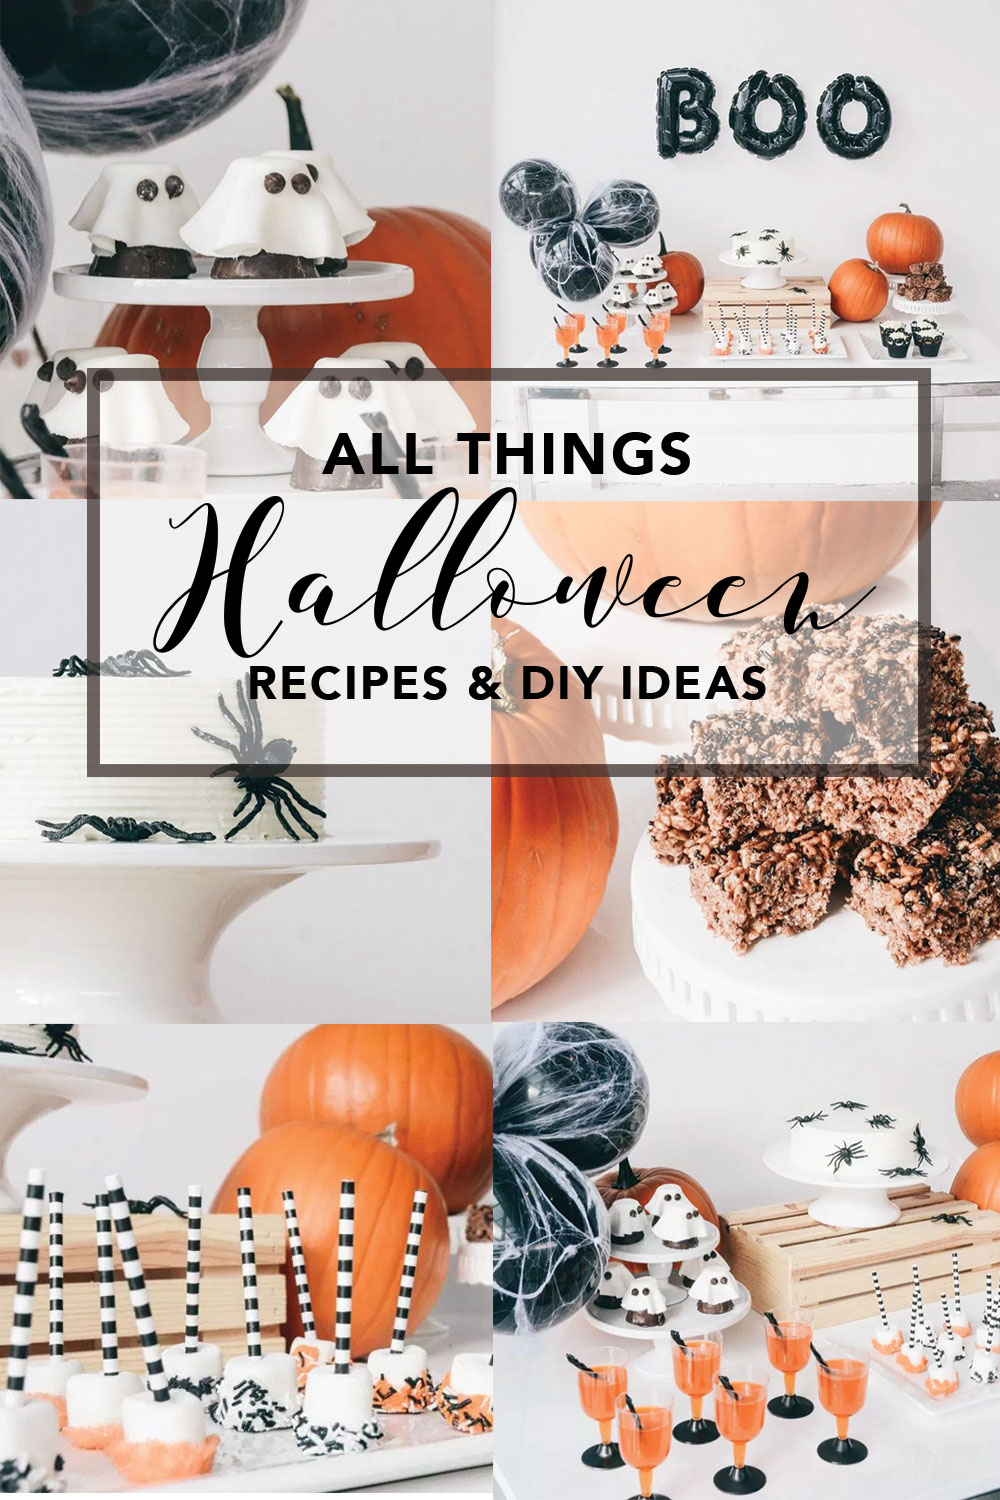 Halloween Themed Party Recipes and DIY Ideas | Decor Inspiration for a Halloween Party